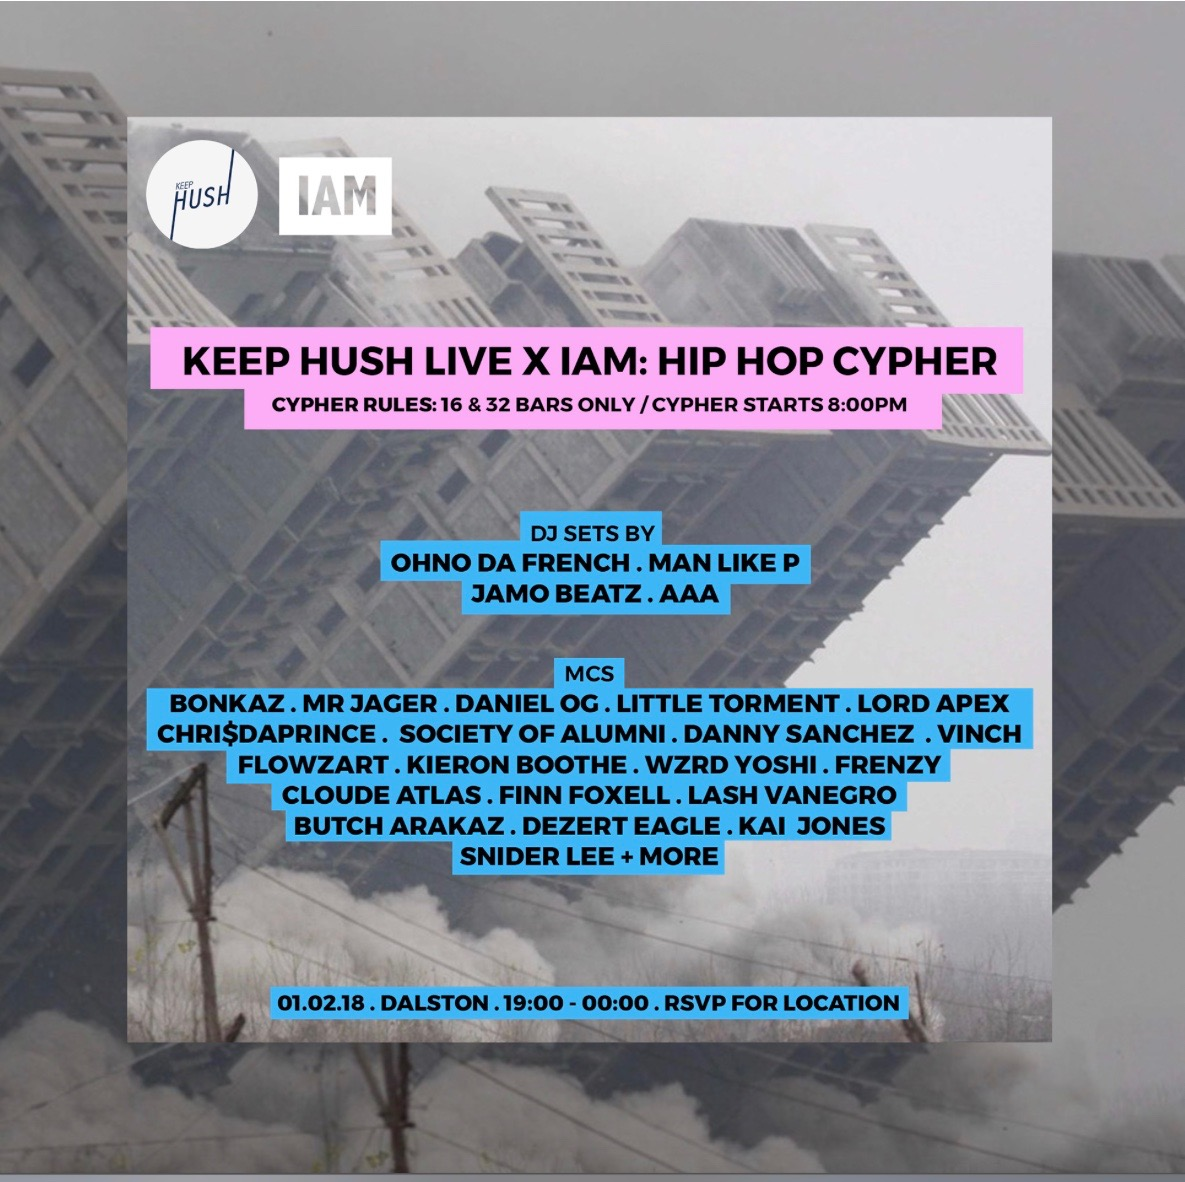 Keep Hush Live X IAM: Hip Hop Cypher « JAGUARSHOES COLLECTIVE